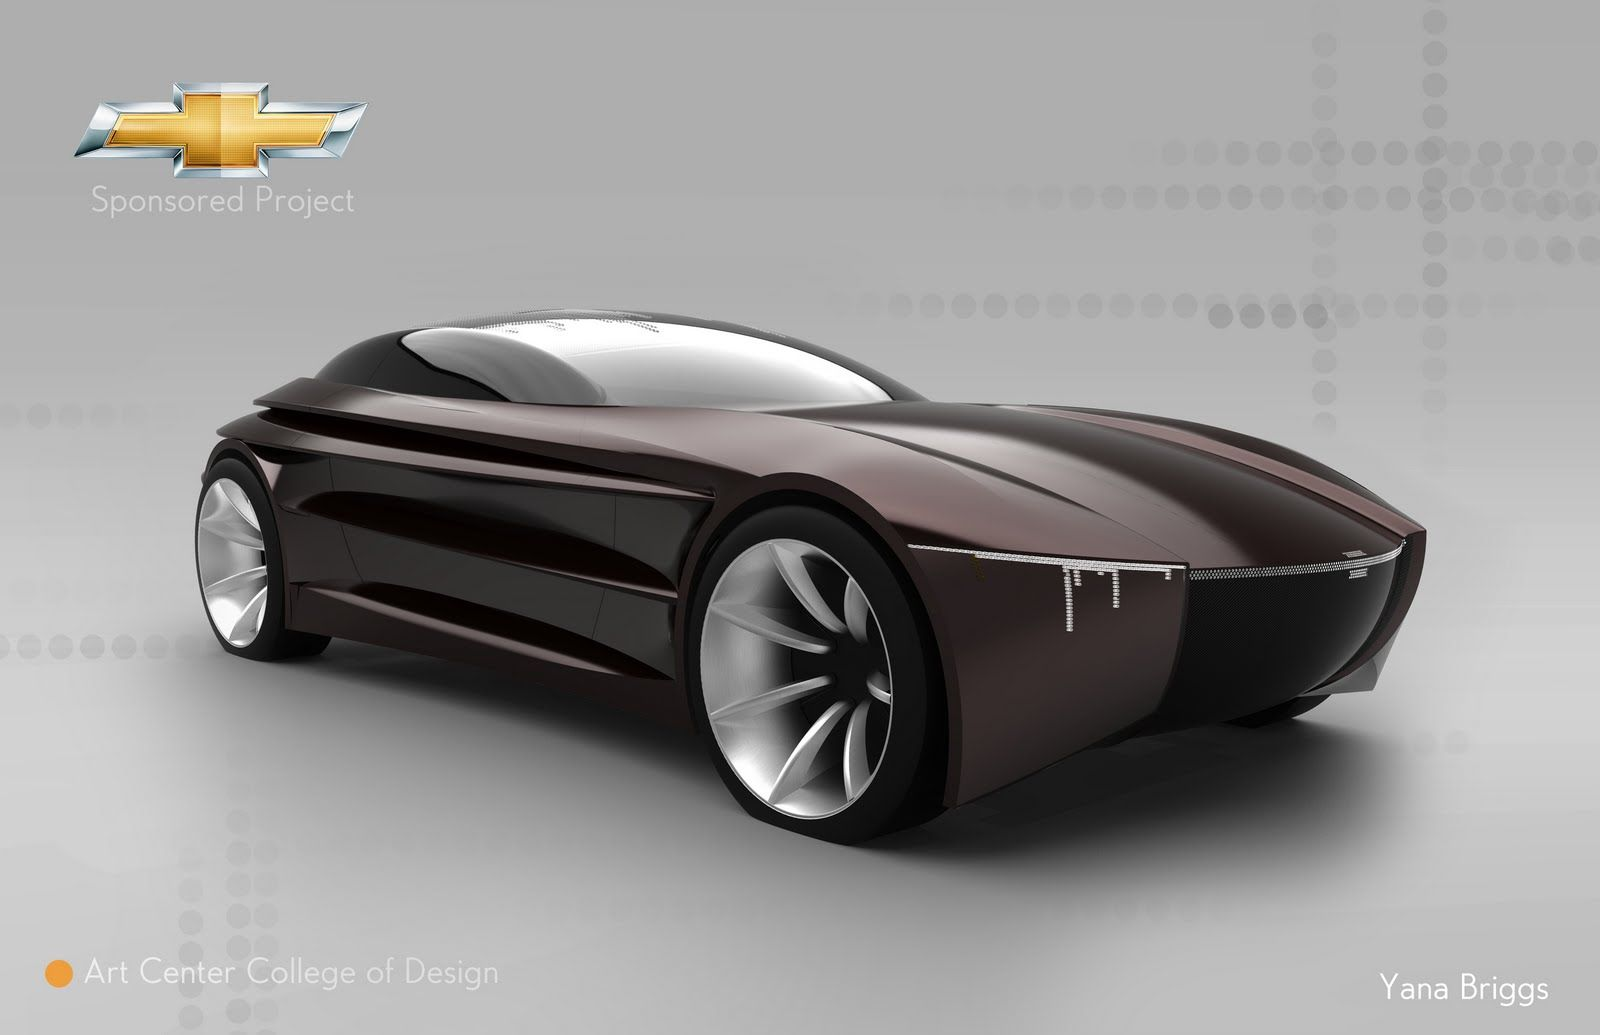 New Chevy Cars 2020 2020 chevy era concept | Automatons | Concept cars, Cars, Super cars